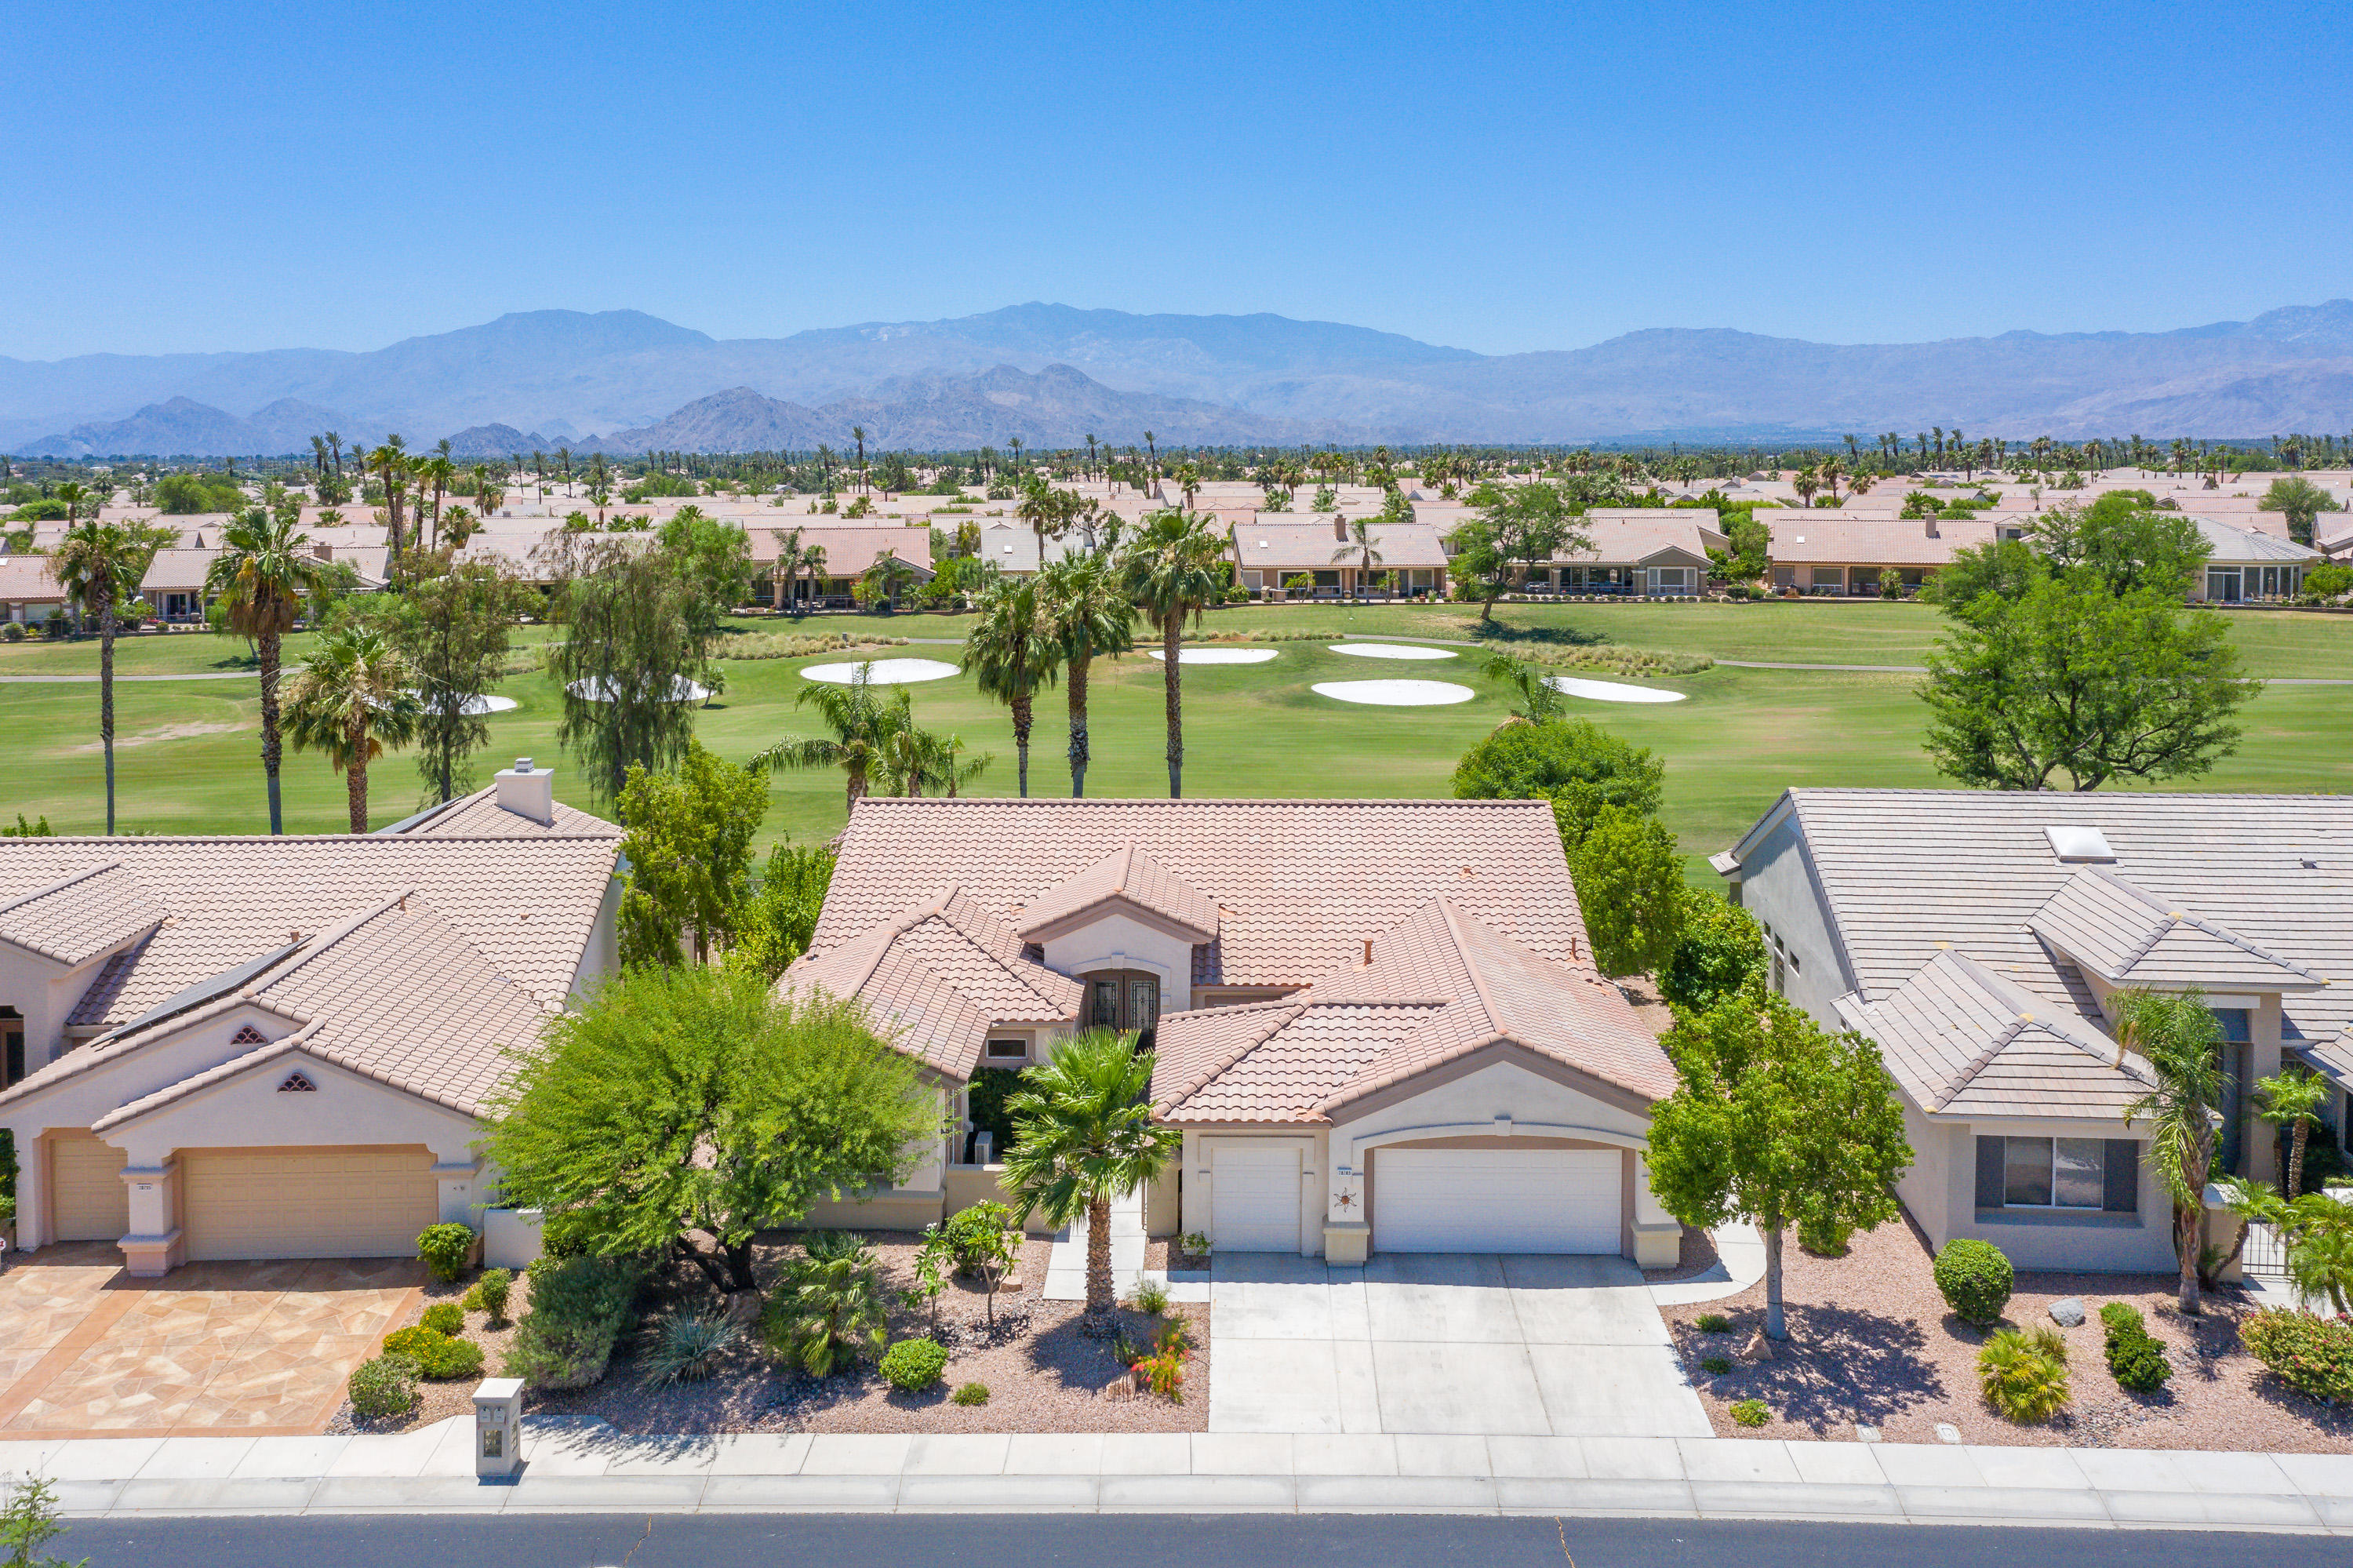 Photo of 78785 Sunrise Canyon Avenue, Palm Desert, CA 92211